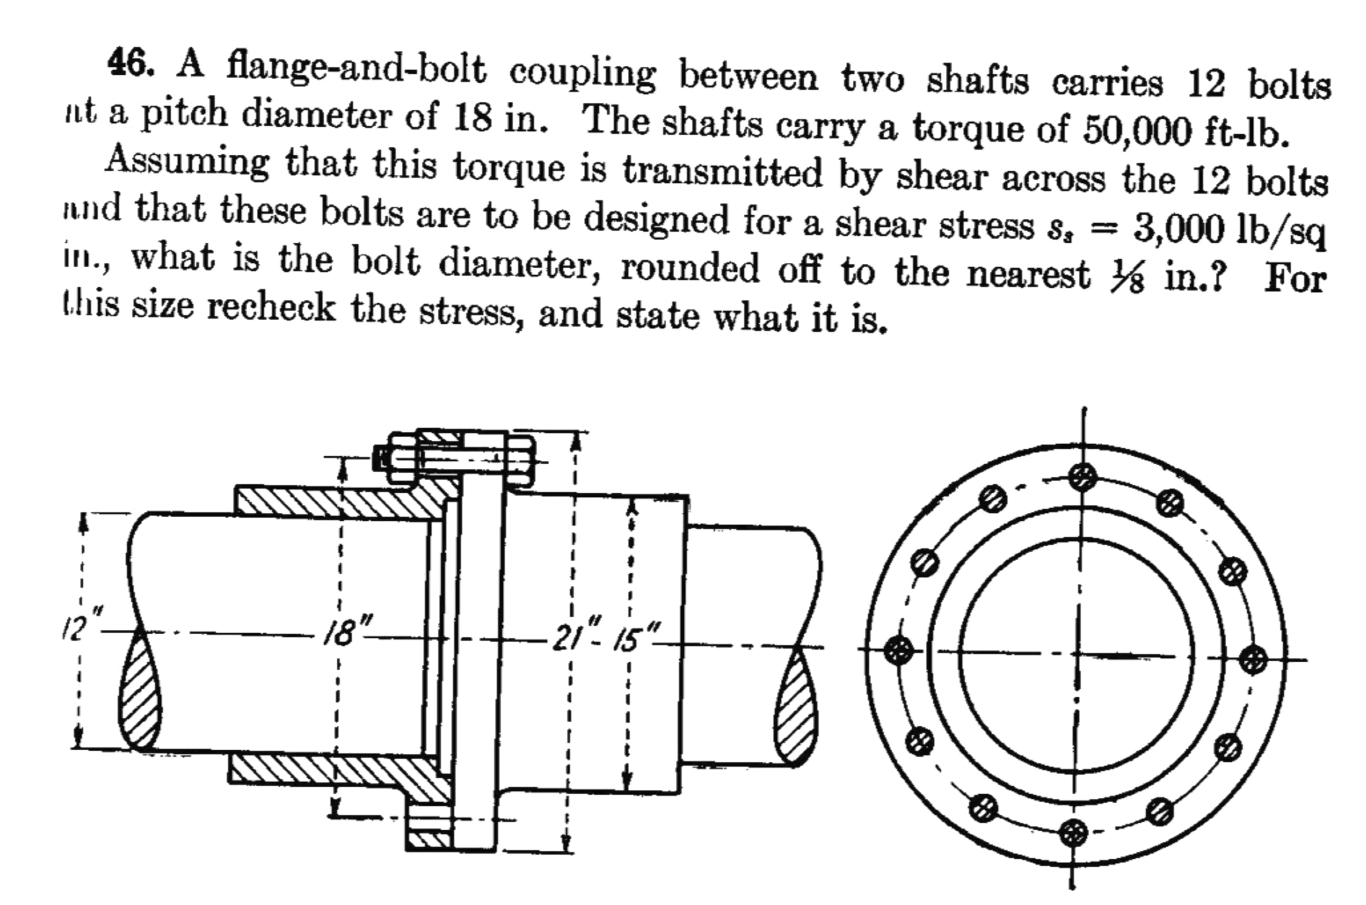 A flange-and-bolt coupling between two shafts carr